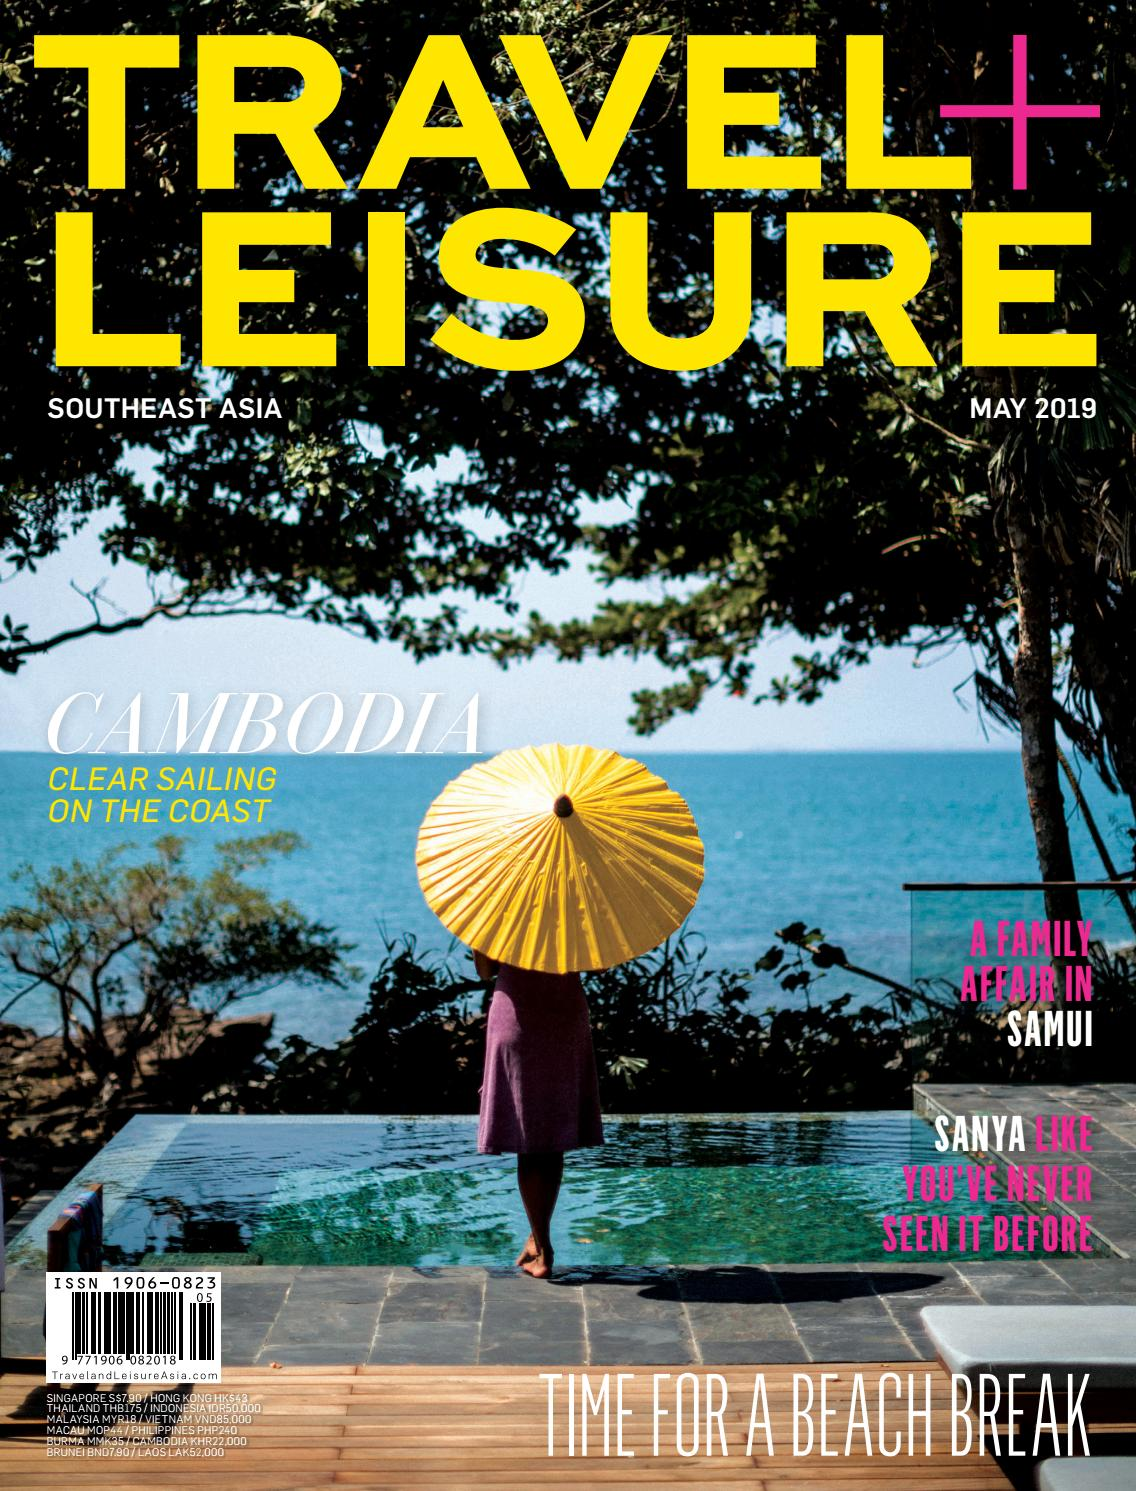 Silver Cross Elegance Buggy Board May 2019 By Travel Leisure Southeast Asia Issuu